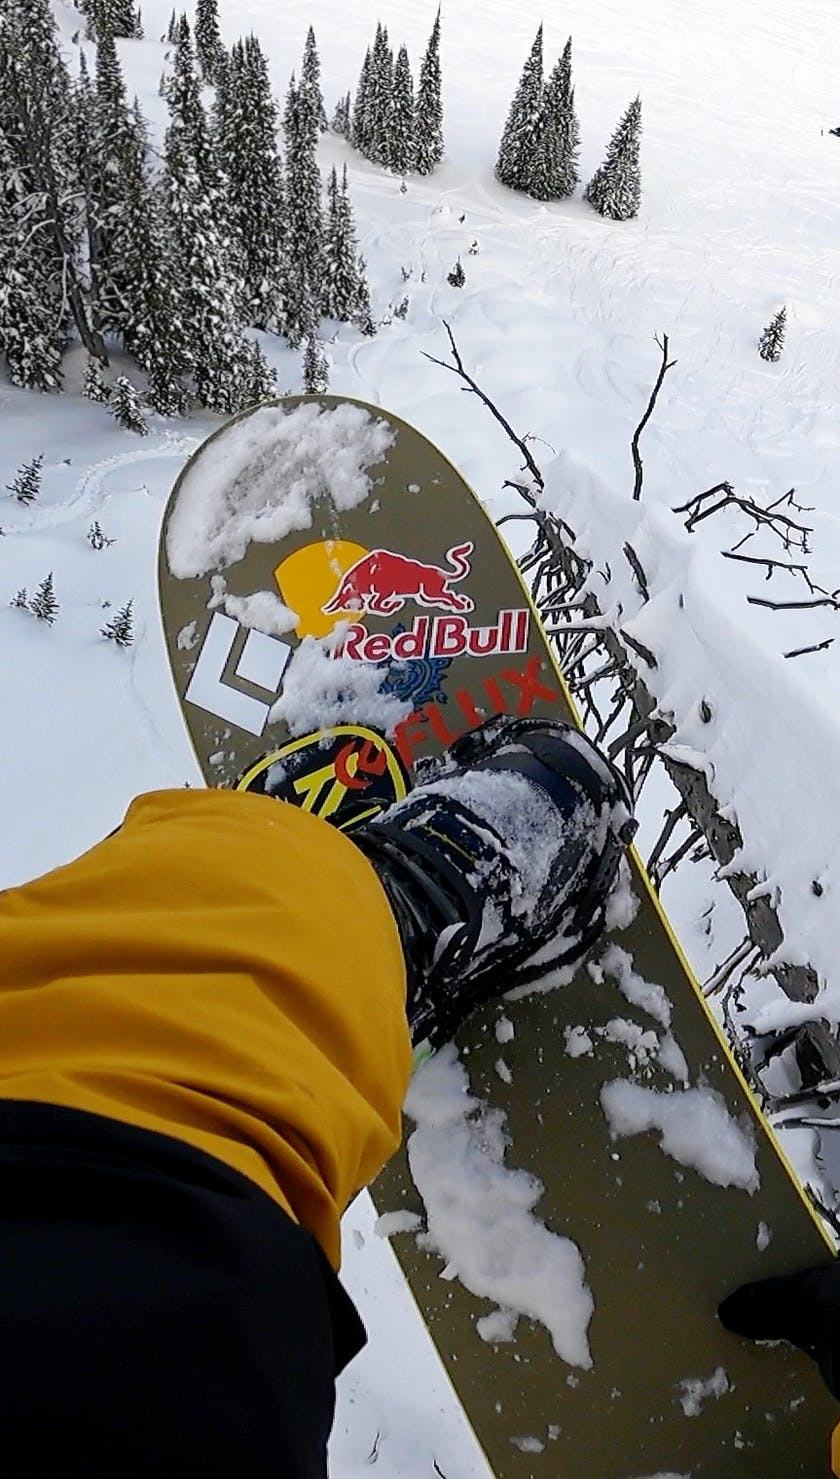 GET UP TO GET DOWN: JOHN JACKSON CRUISES THE CASCADE GLADES